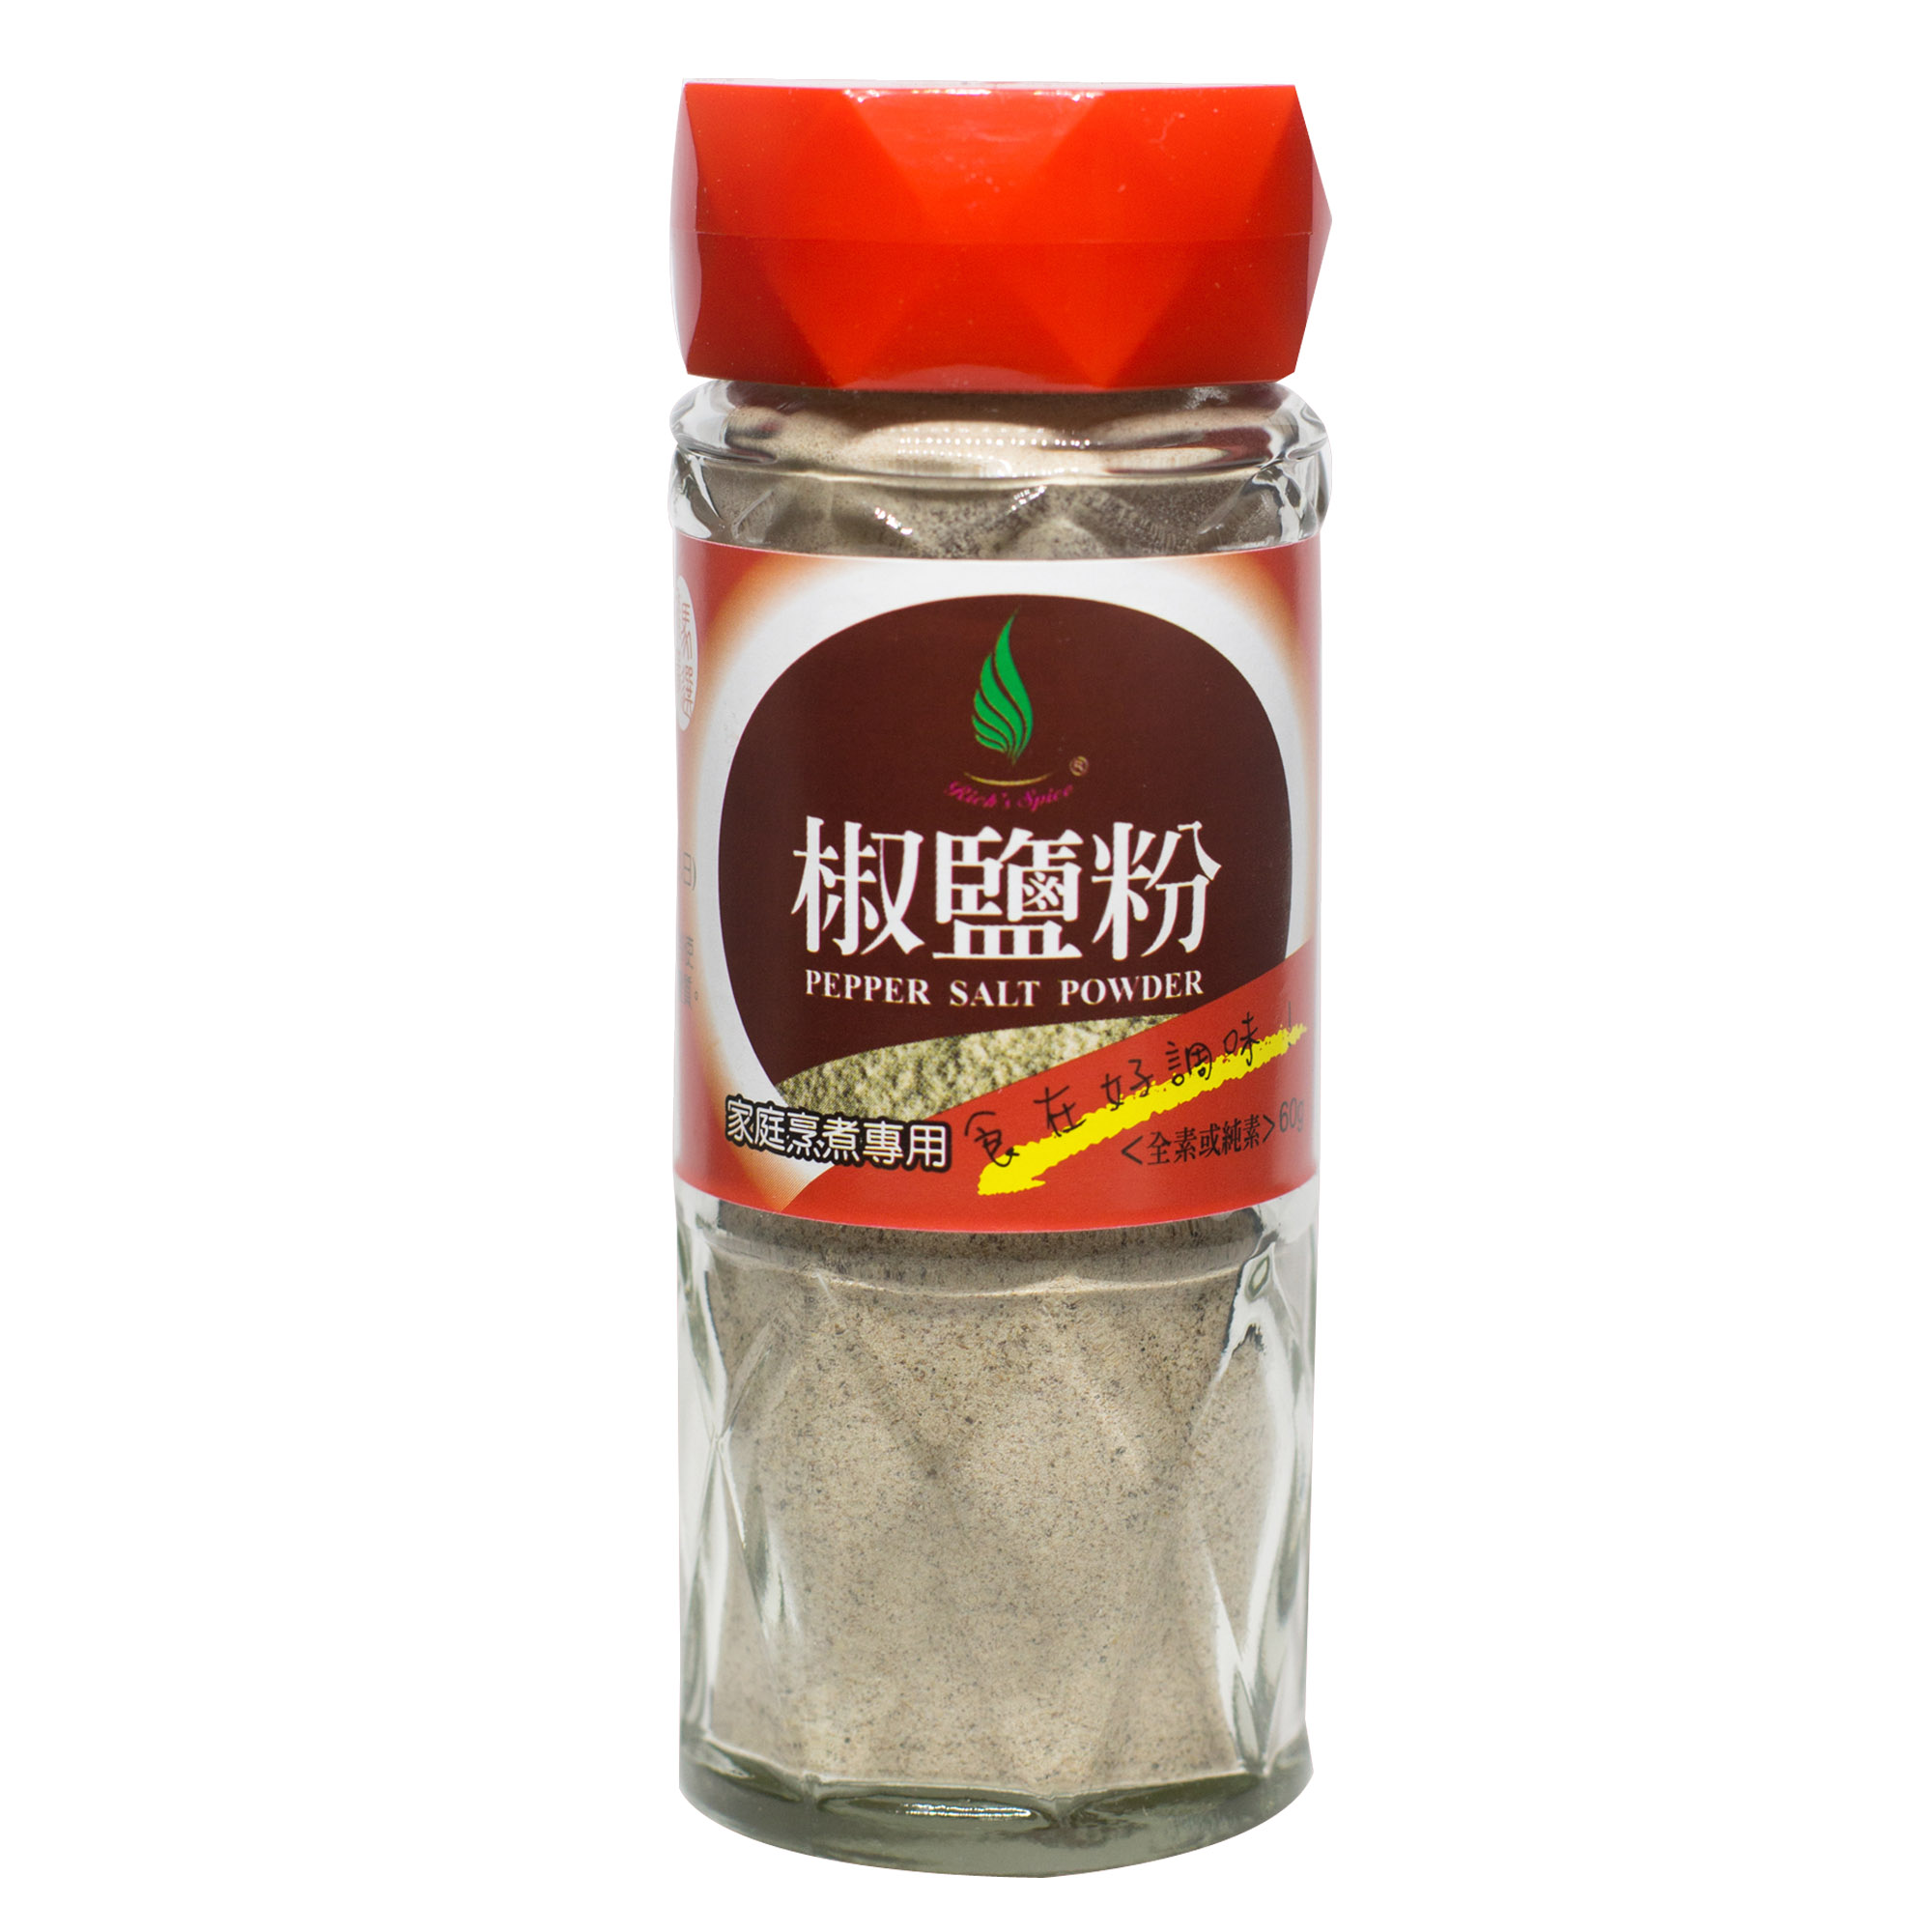 Image Pepper Salt Powder 济生 - 椒盐粉 60grams